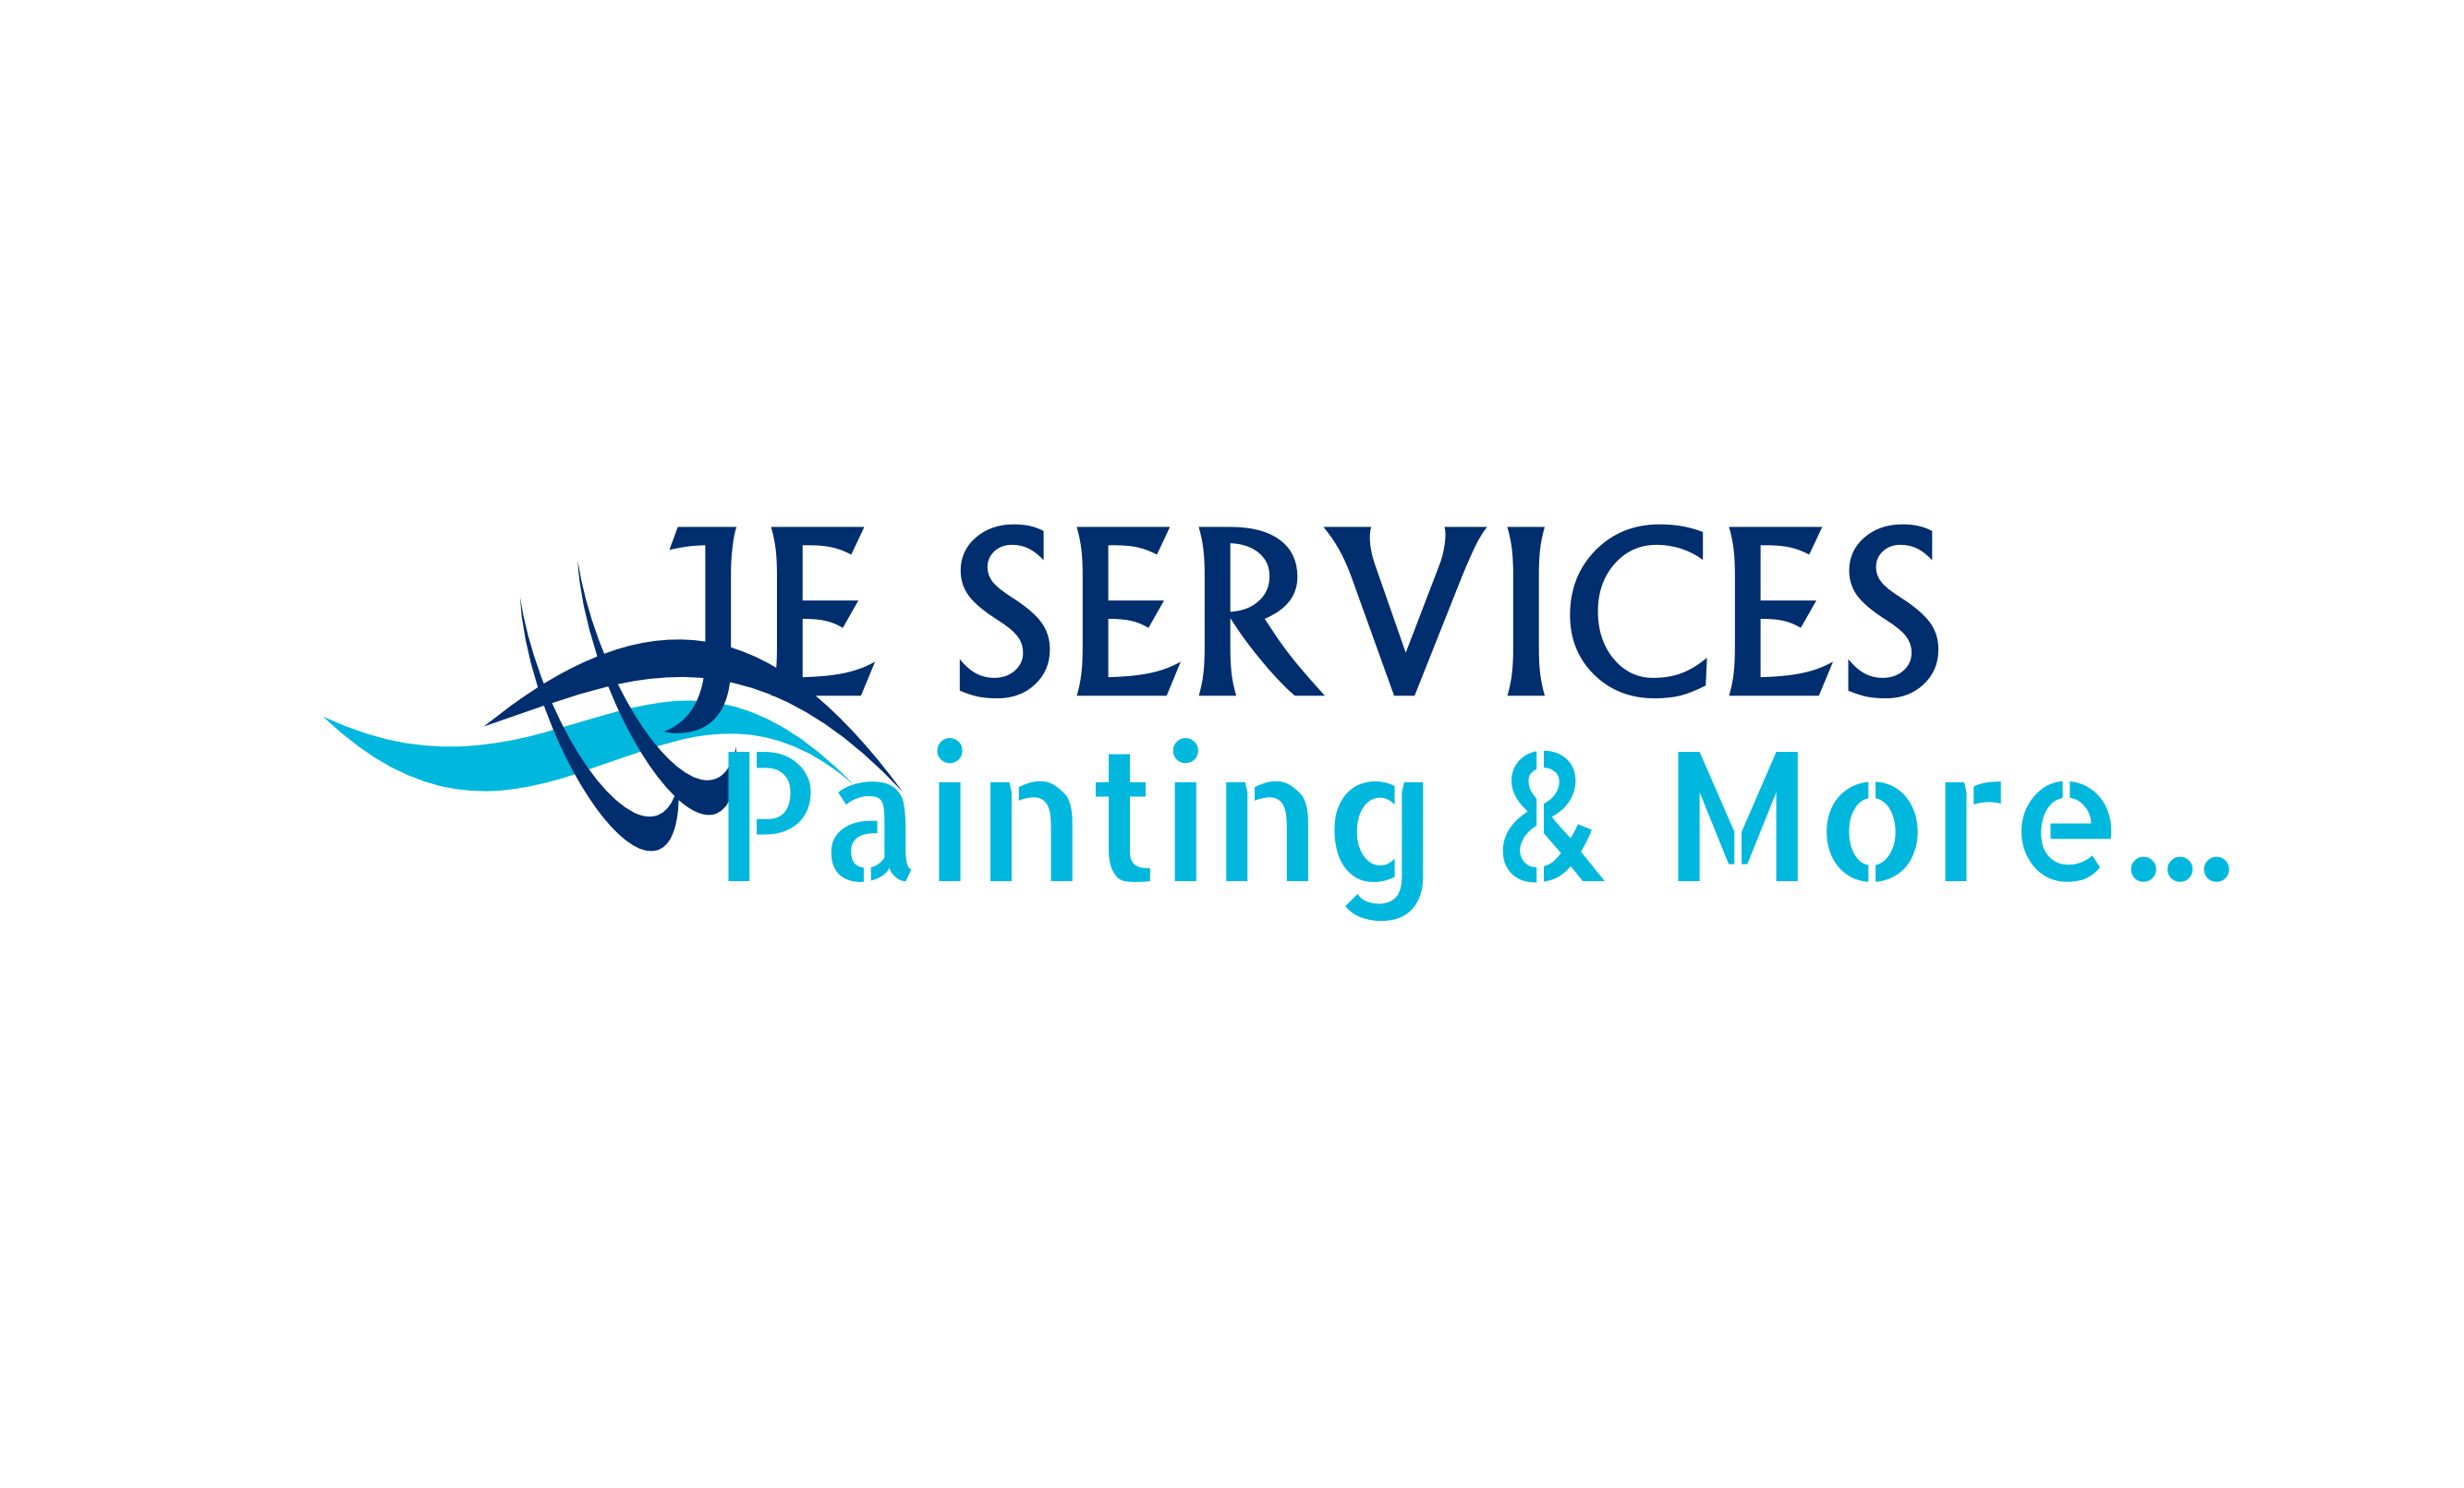 JE SERVICES - Painting & More